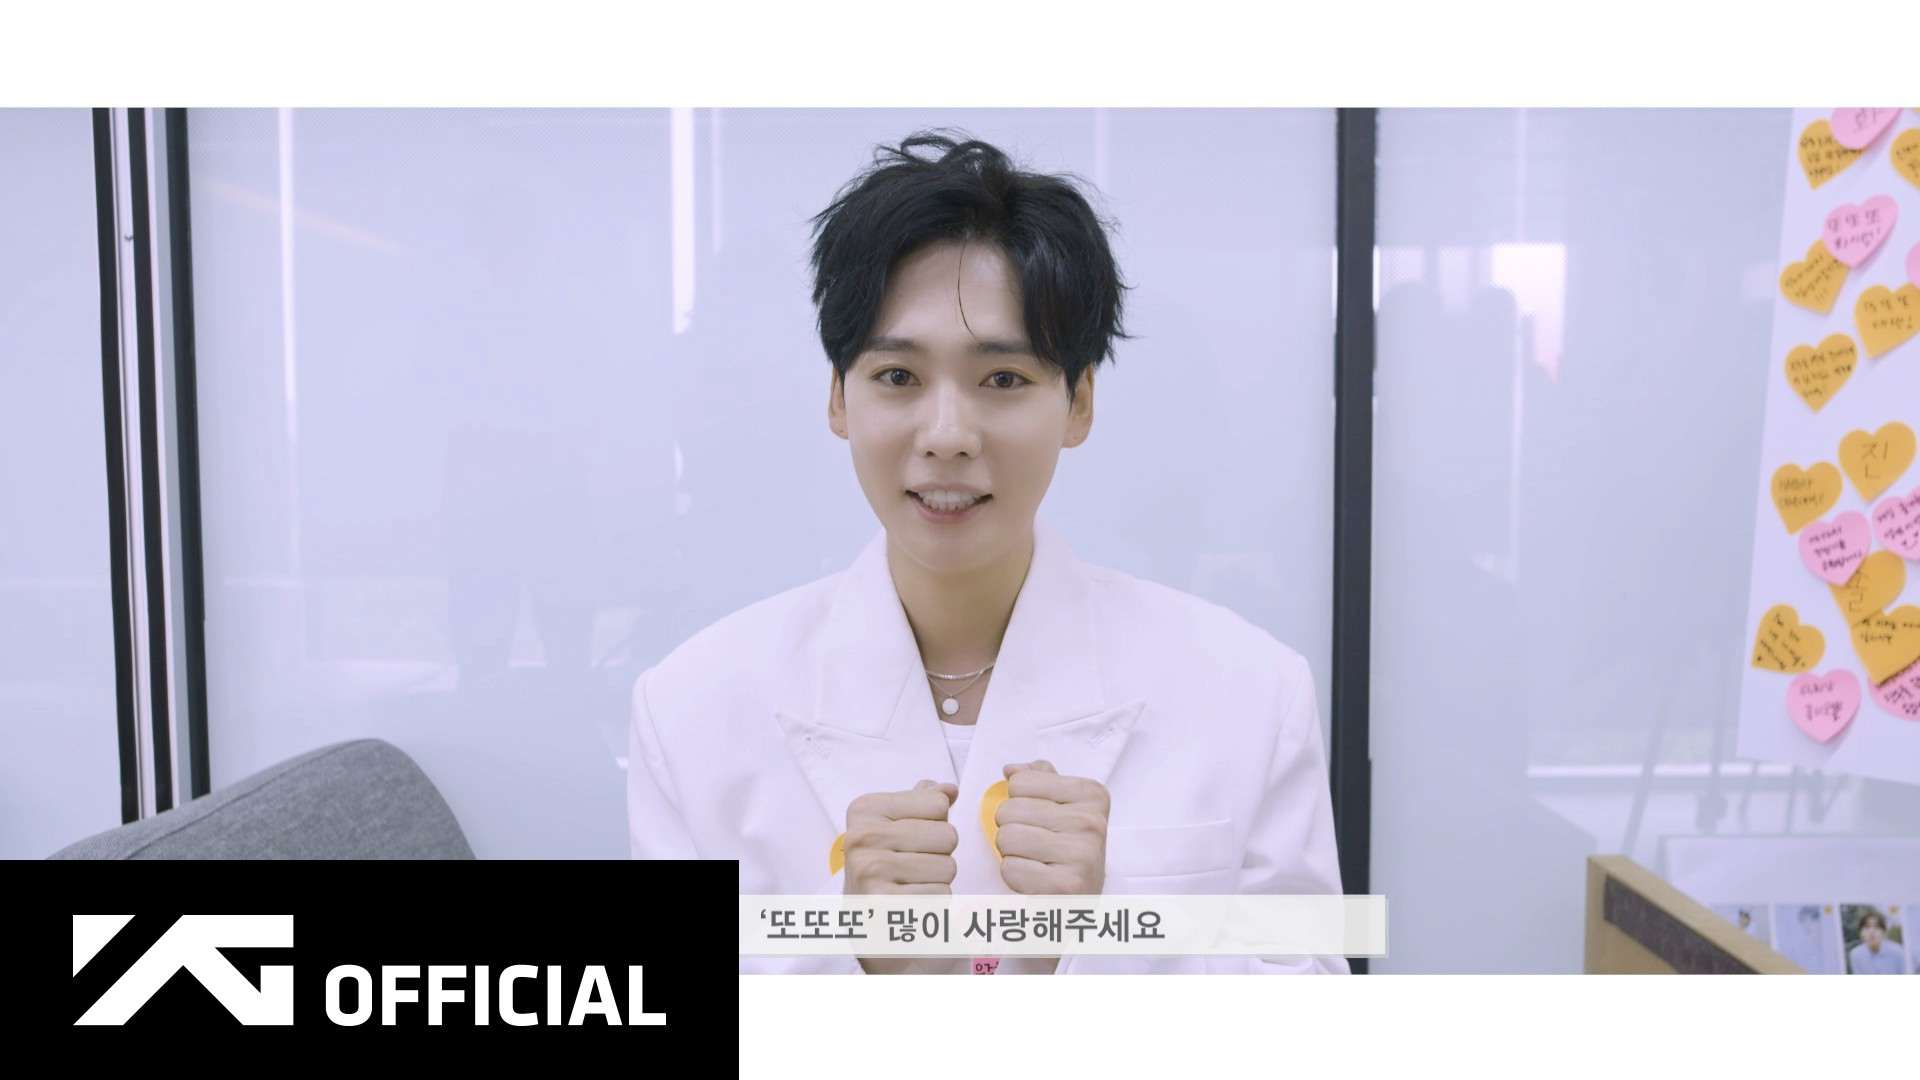 JINU - SPECIAL DAY ONLY FOR JINU